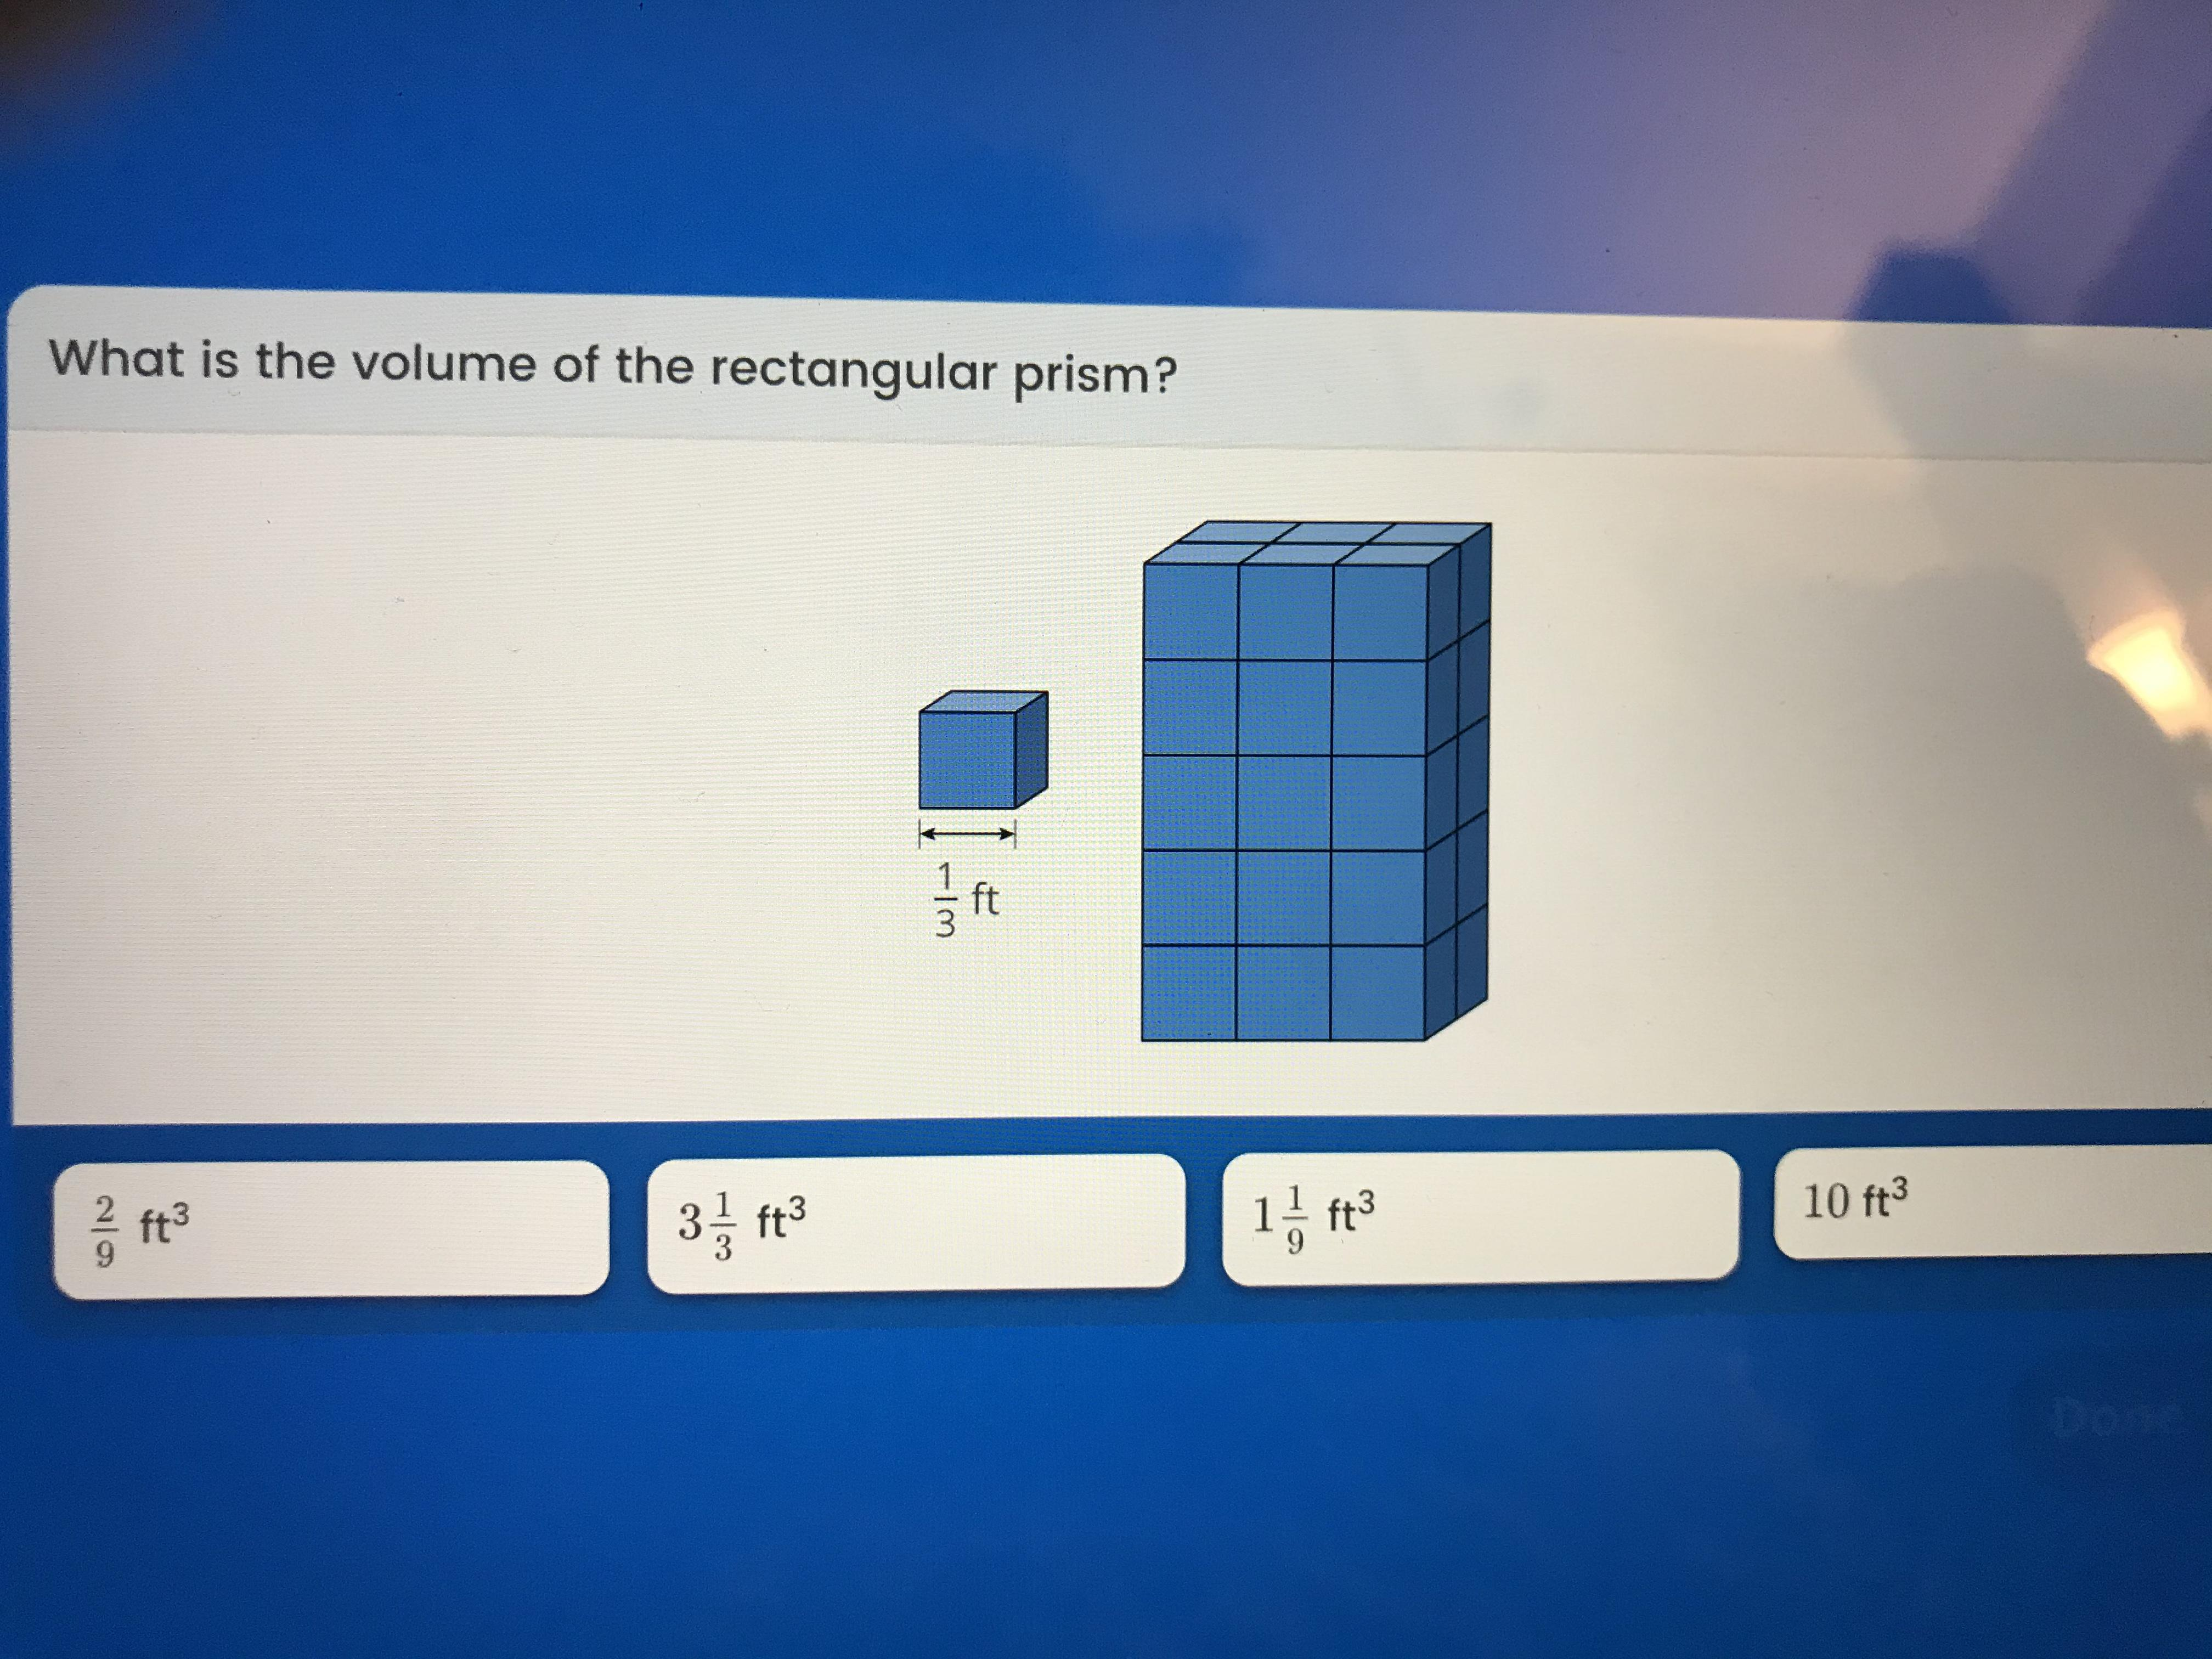 What Is The Volume Of The Rectangular Prism